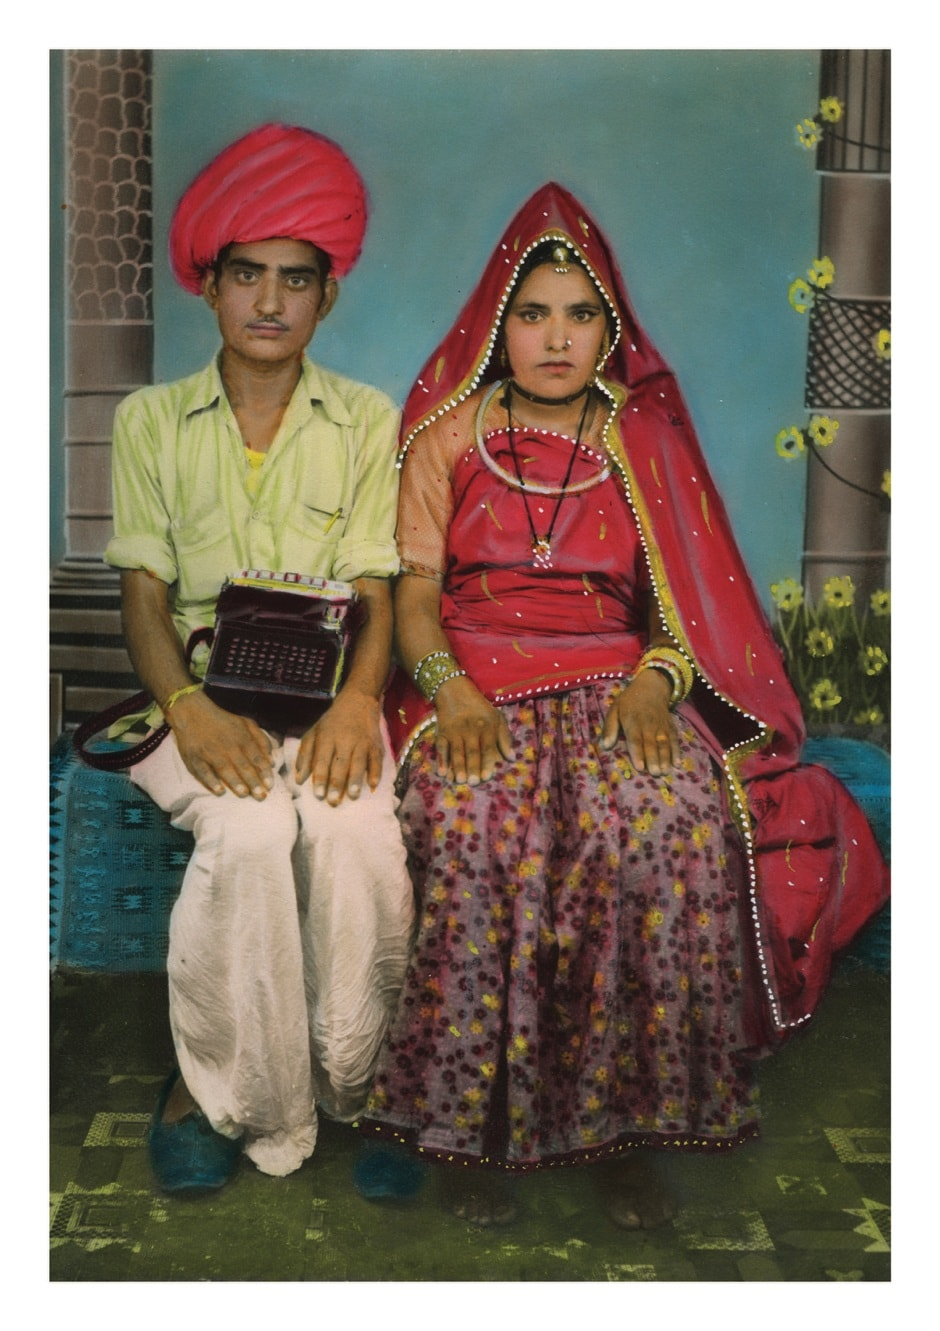 Prebois is a French artist, connoisseur and dealer of Indian vernacular photography.